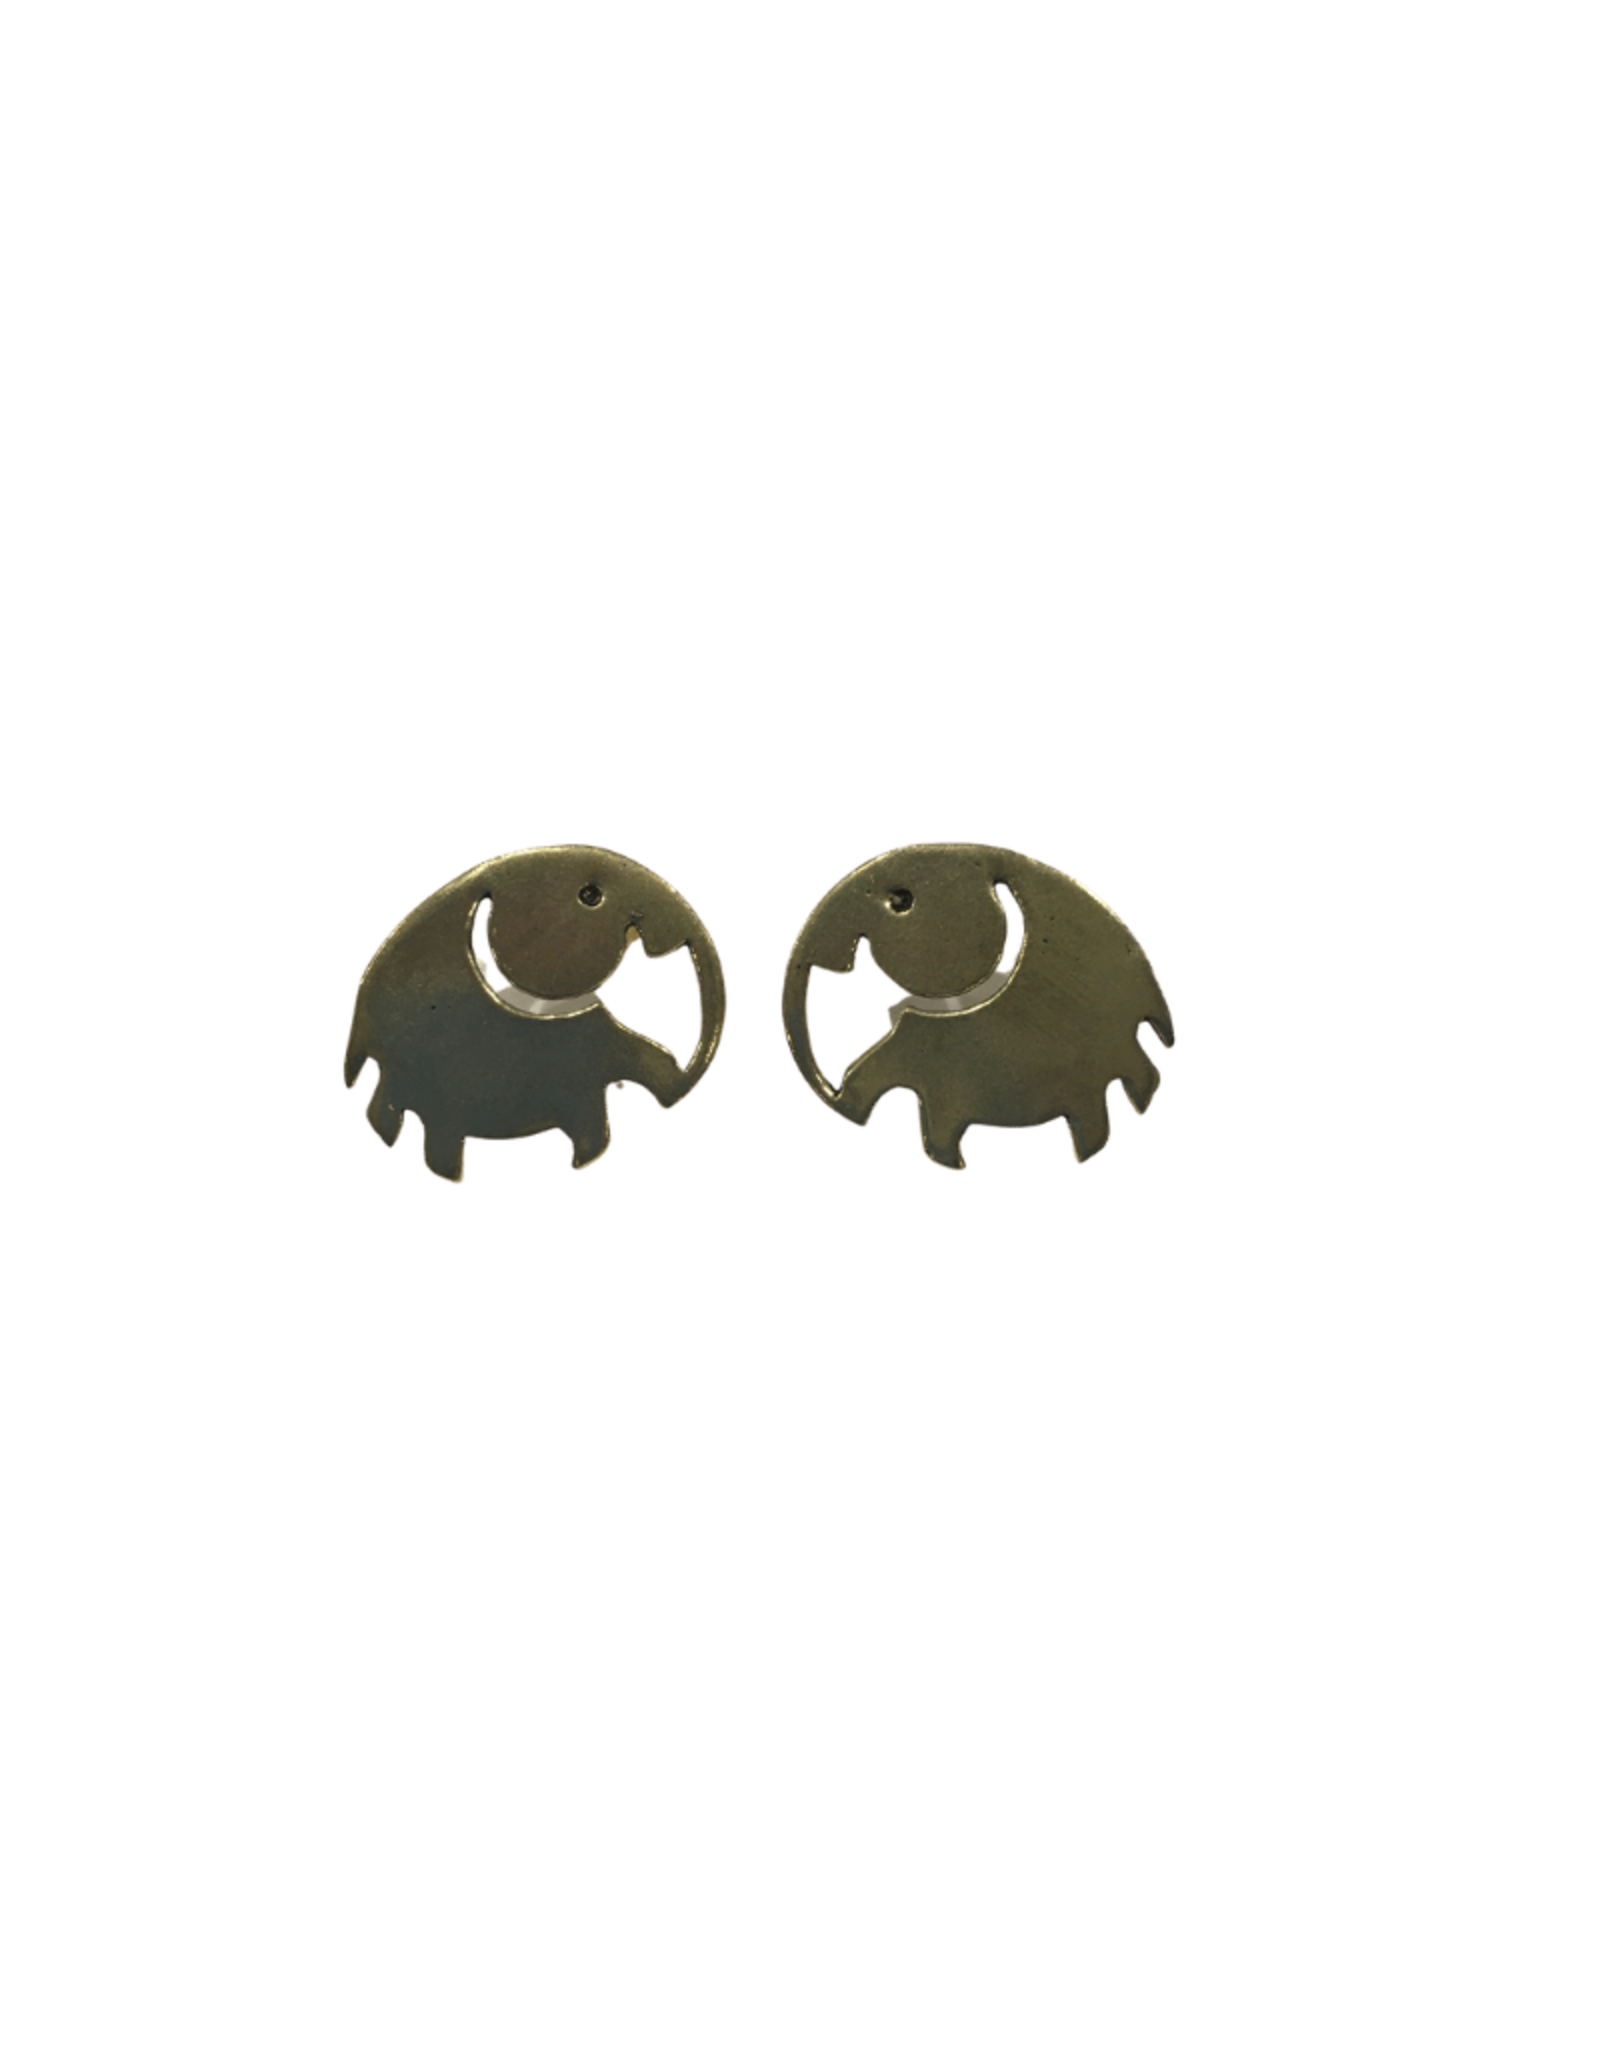 Global Crafts Elephant Brass Stud Earrings